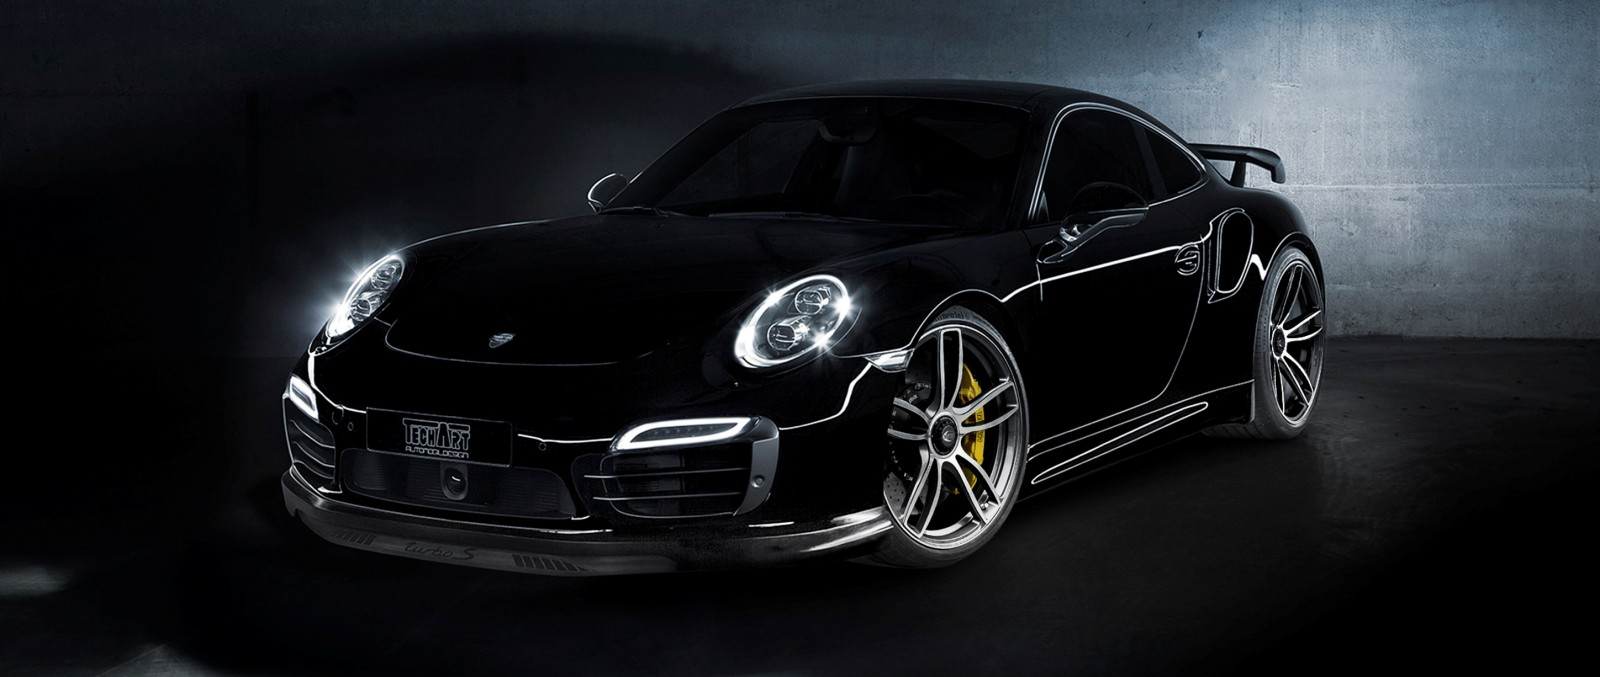 TECHART_Formula_IV_Race_for_Porsche_991_Turbo_S